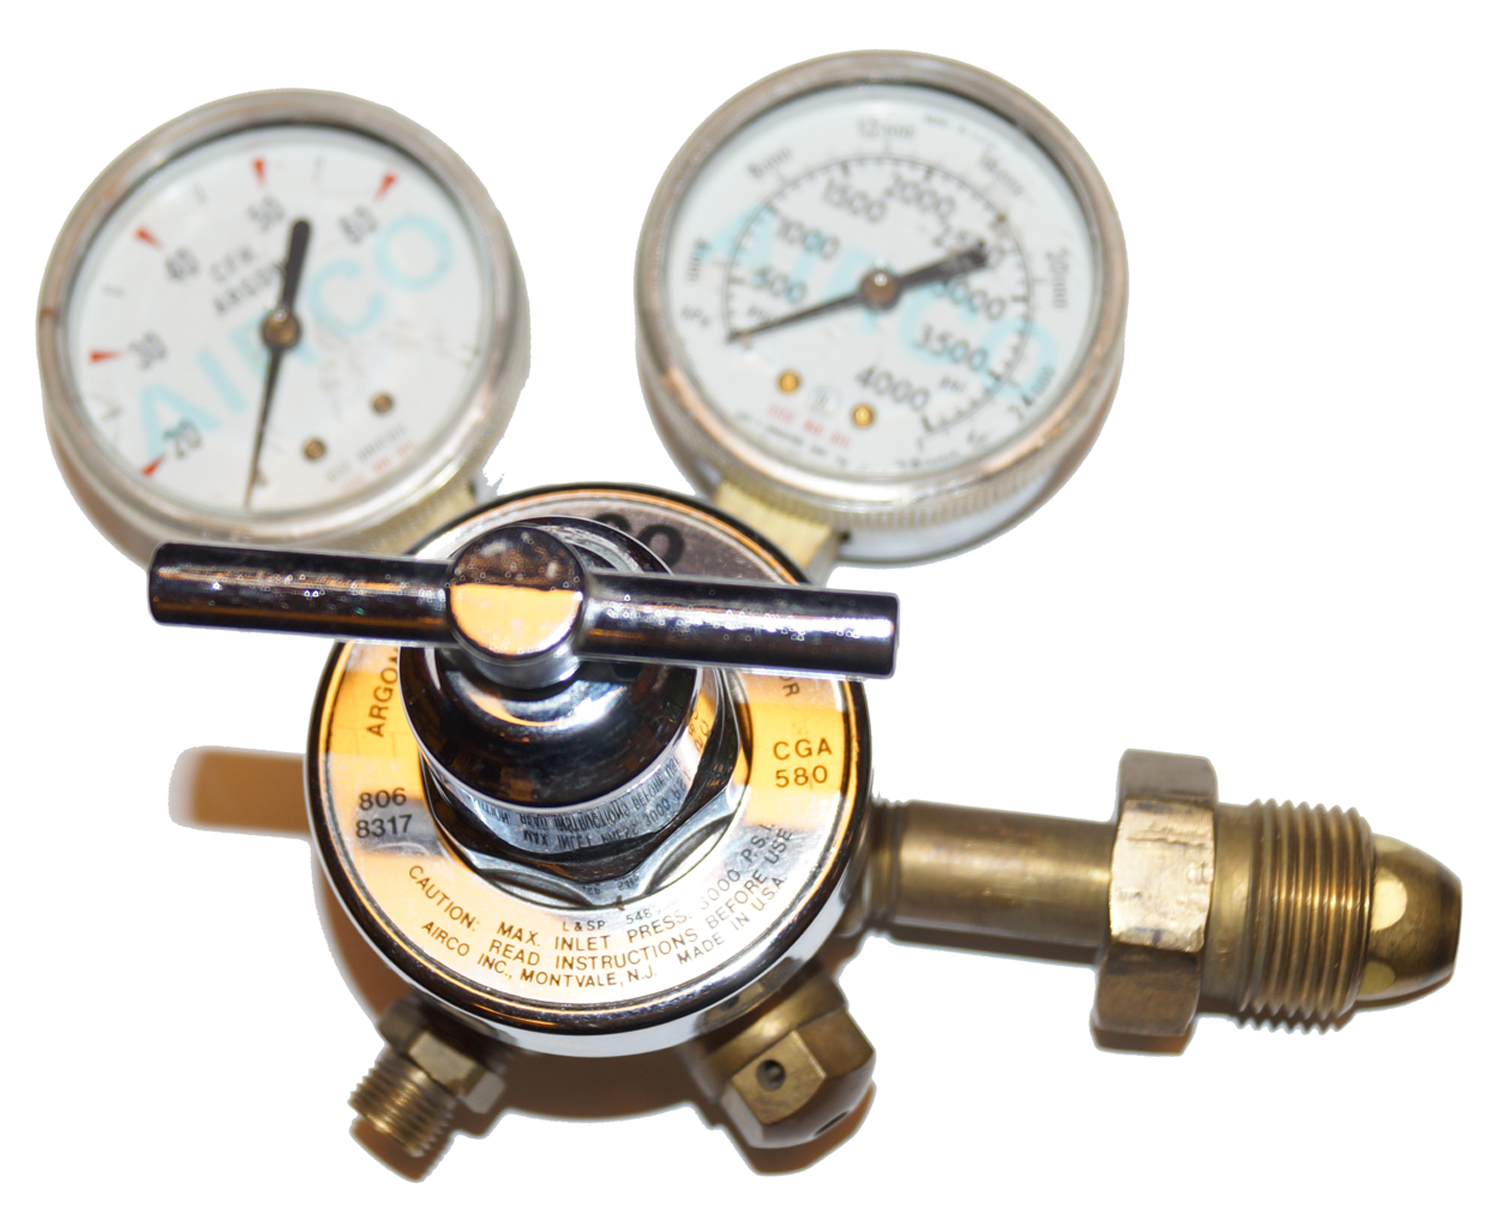 Argon Regulator, Airco 806-8317 CGA-580